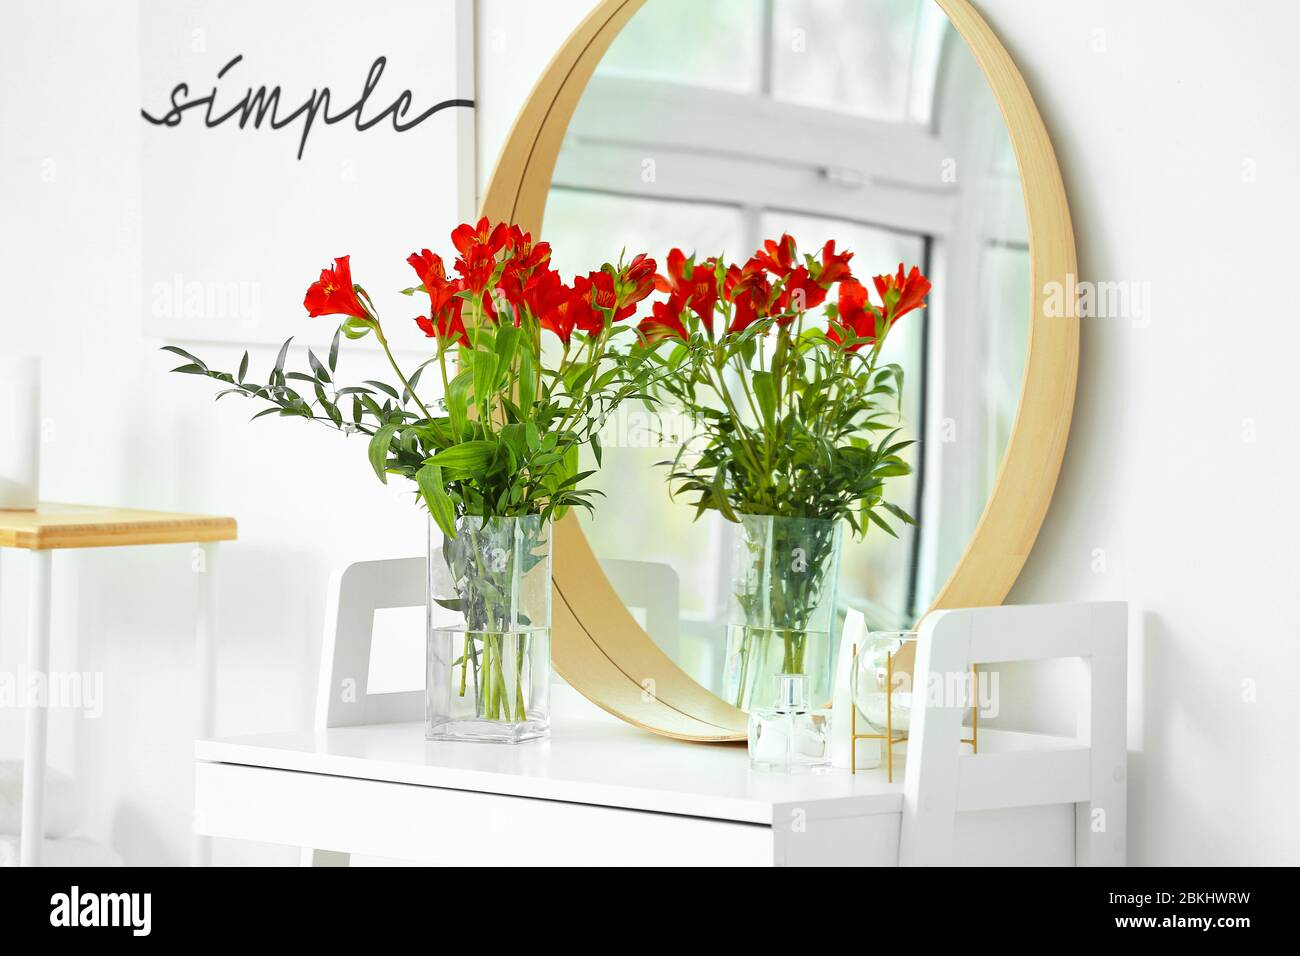 Stylish vase with floral decor in interior of bathroom Stock Photo